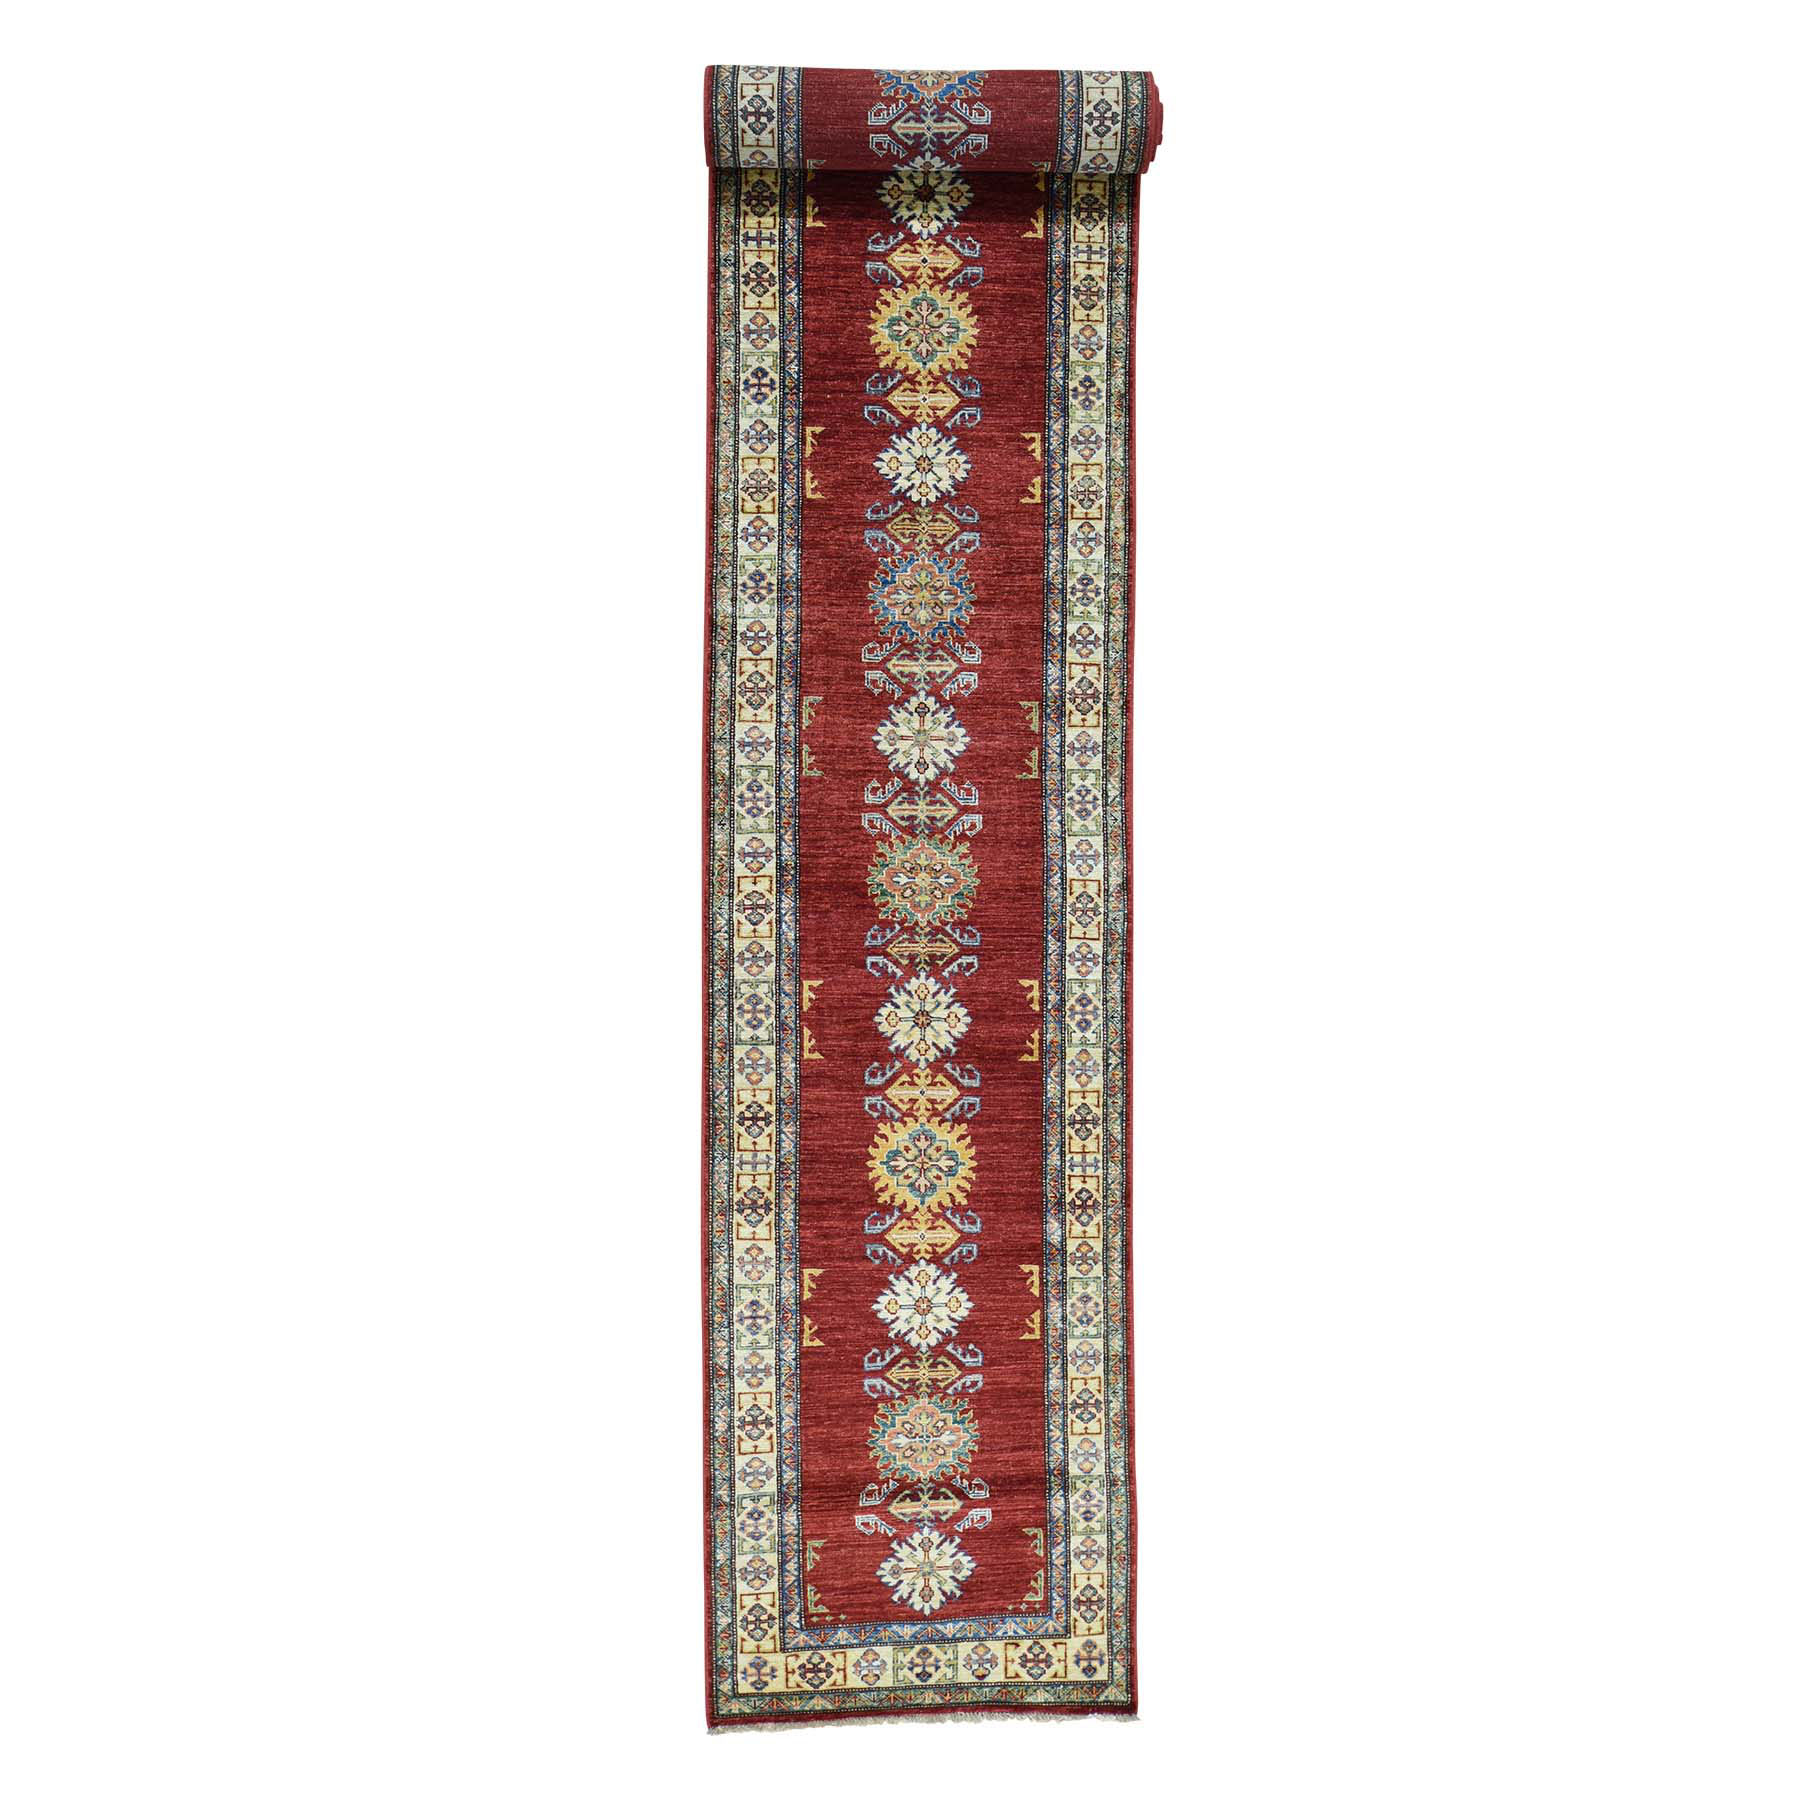 "2'8""X19' Hand-Knotted Red Super Kazak Xl Runner Tribal Design Rug moaca0b0"